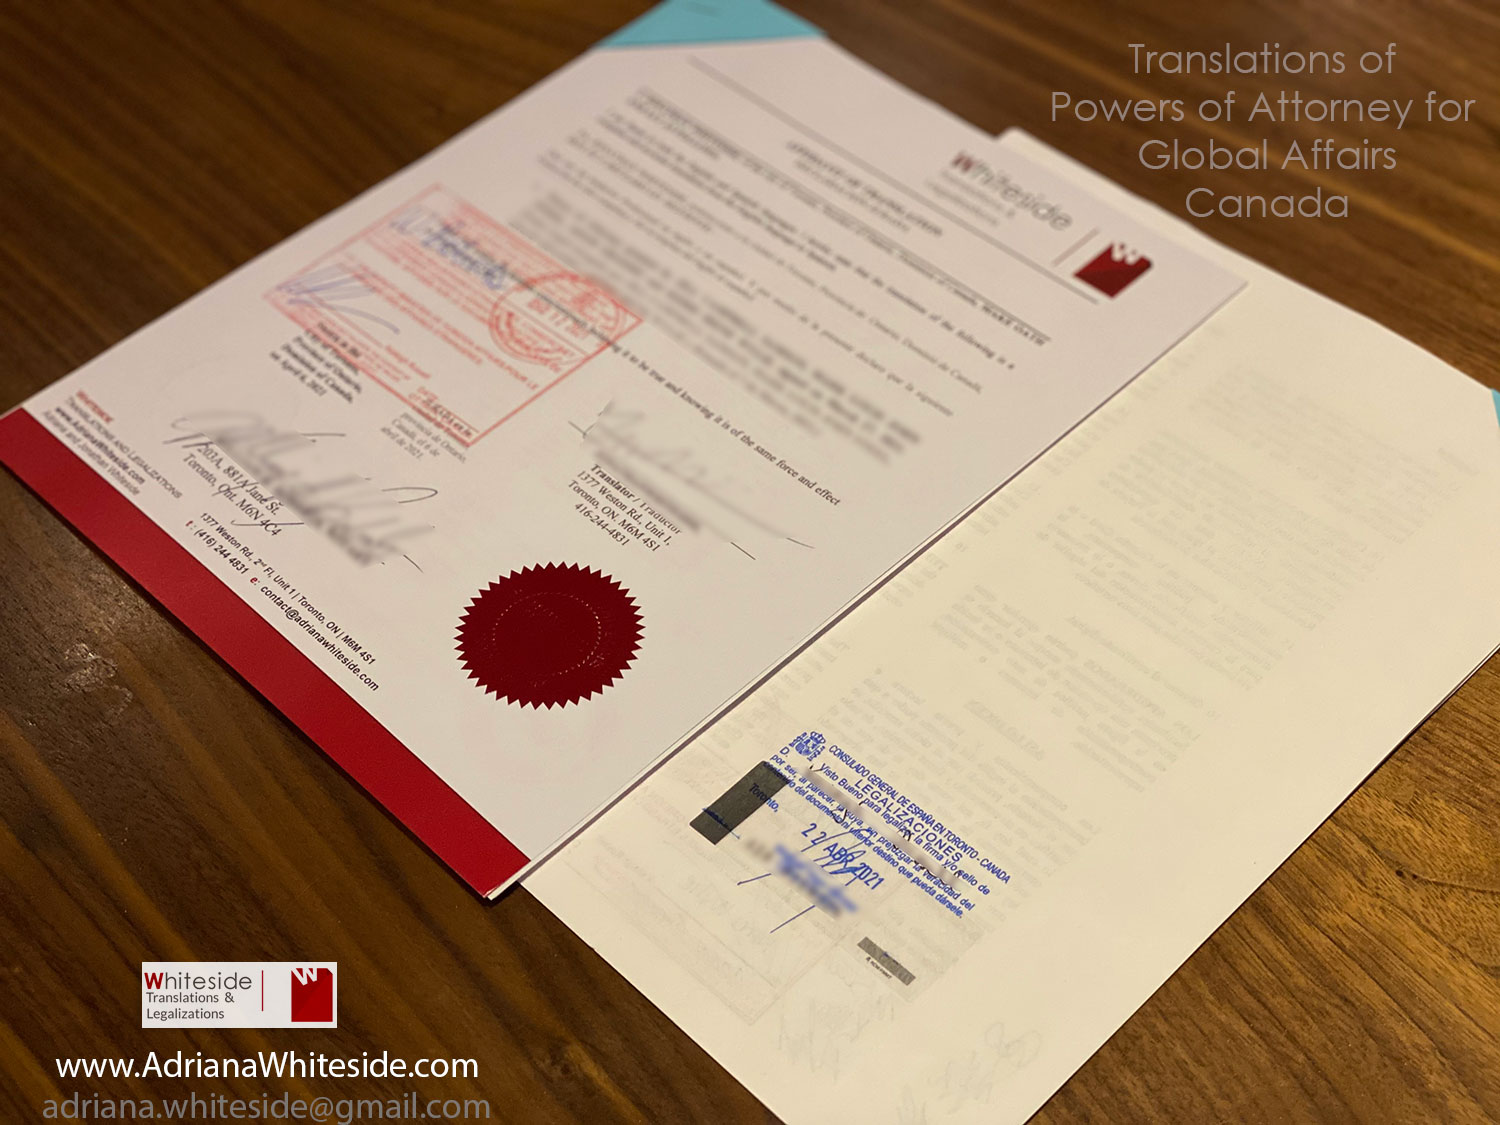 Power of Attorney translation for Global Affairs